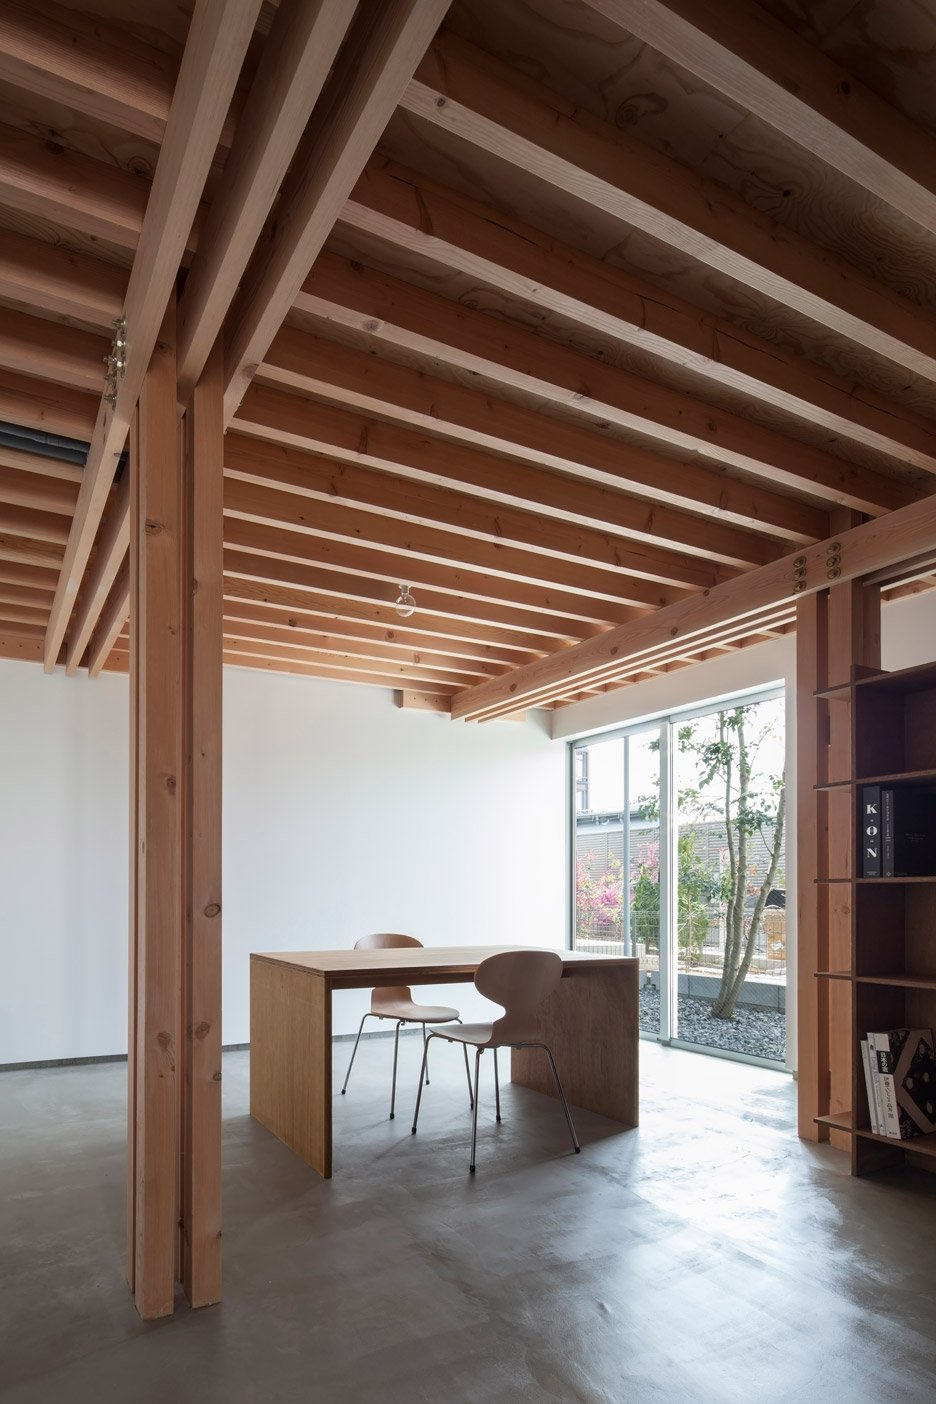 FT Architects\' 4 Columns house features a timber frame